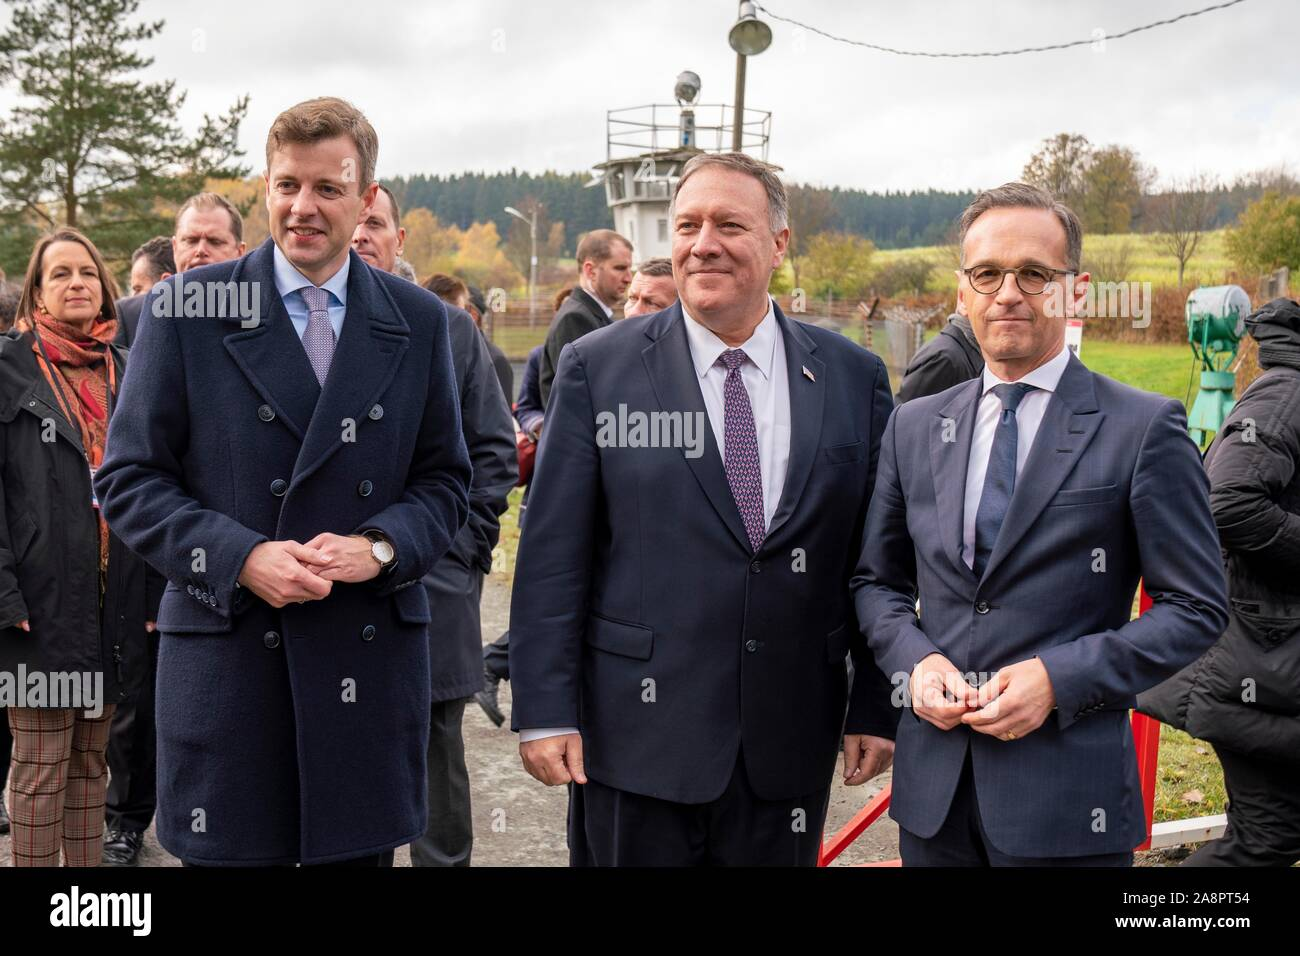 U.S. Secretary of State Mike Pompeo, center, during a walking tour of the remains of the Berlin Wall with German Foreign Minister Heiko Maas, right, November 7, 2019 in Modlareuth, Germany. Pompeo is in Germany to mark the 30th anniversary of the fall of the Berlin Wall. Stock Photo